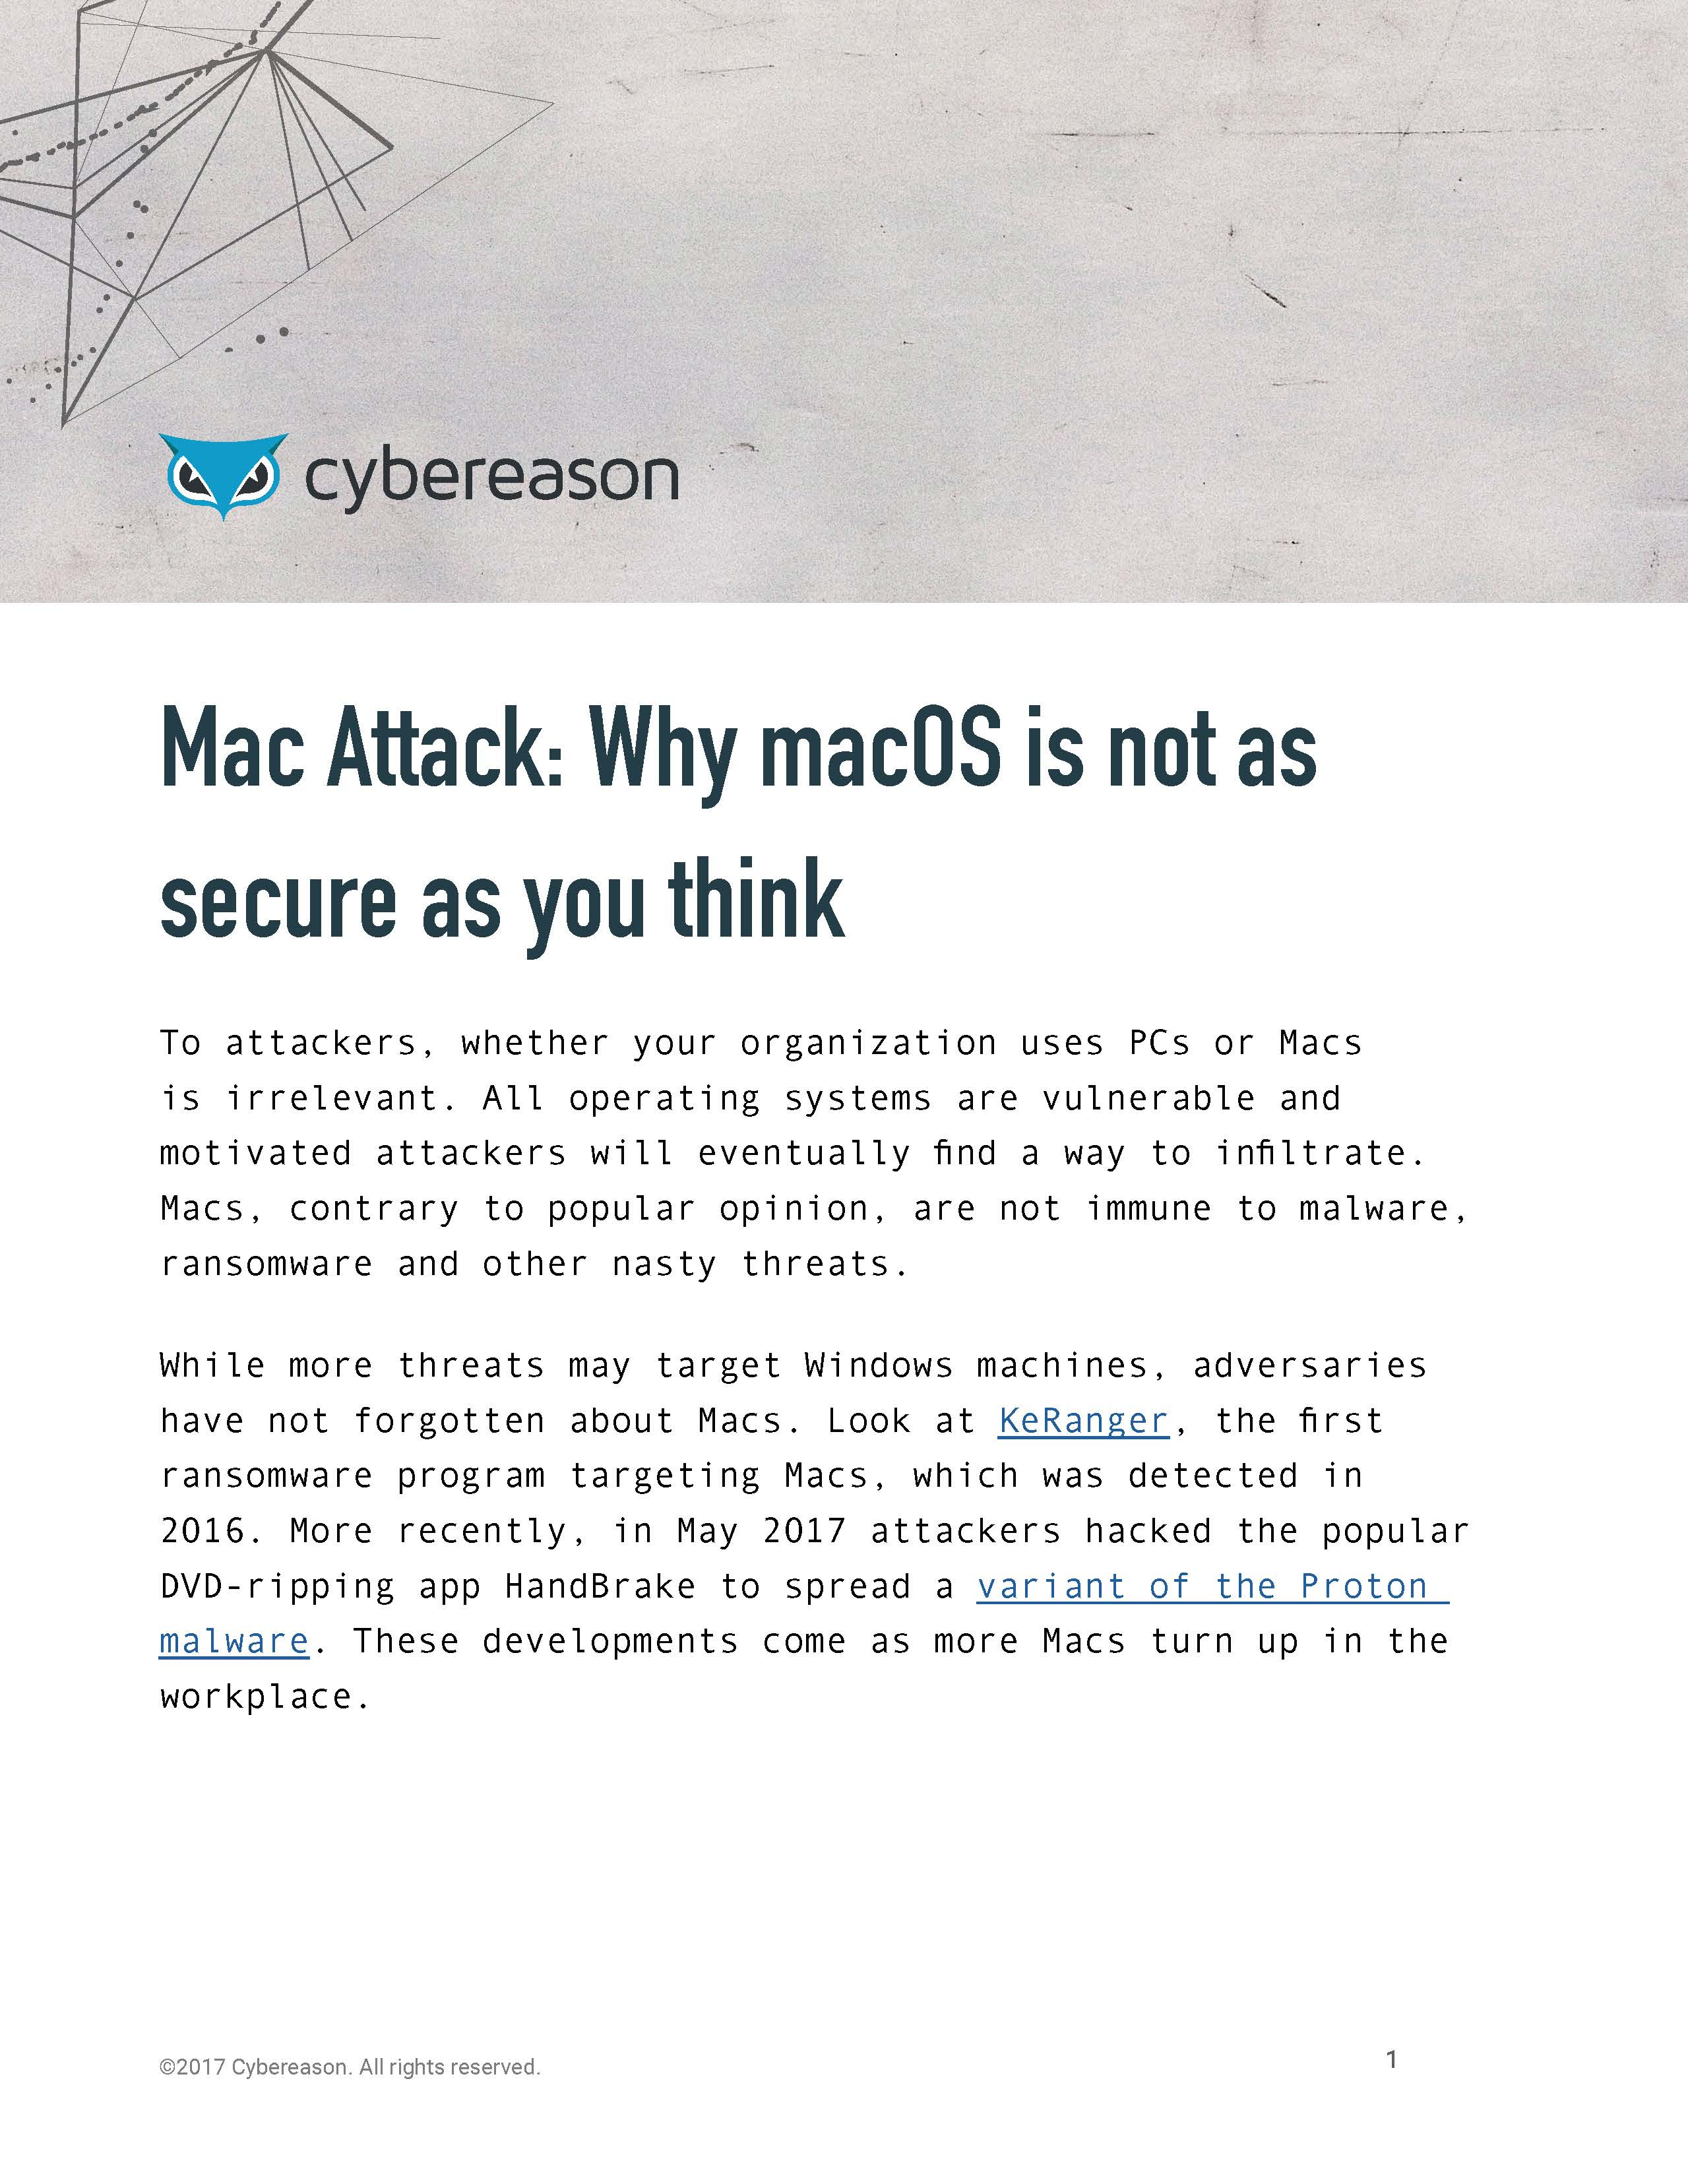 Mac Attack: Why macOS is not as secure as you think